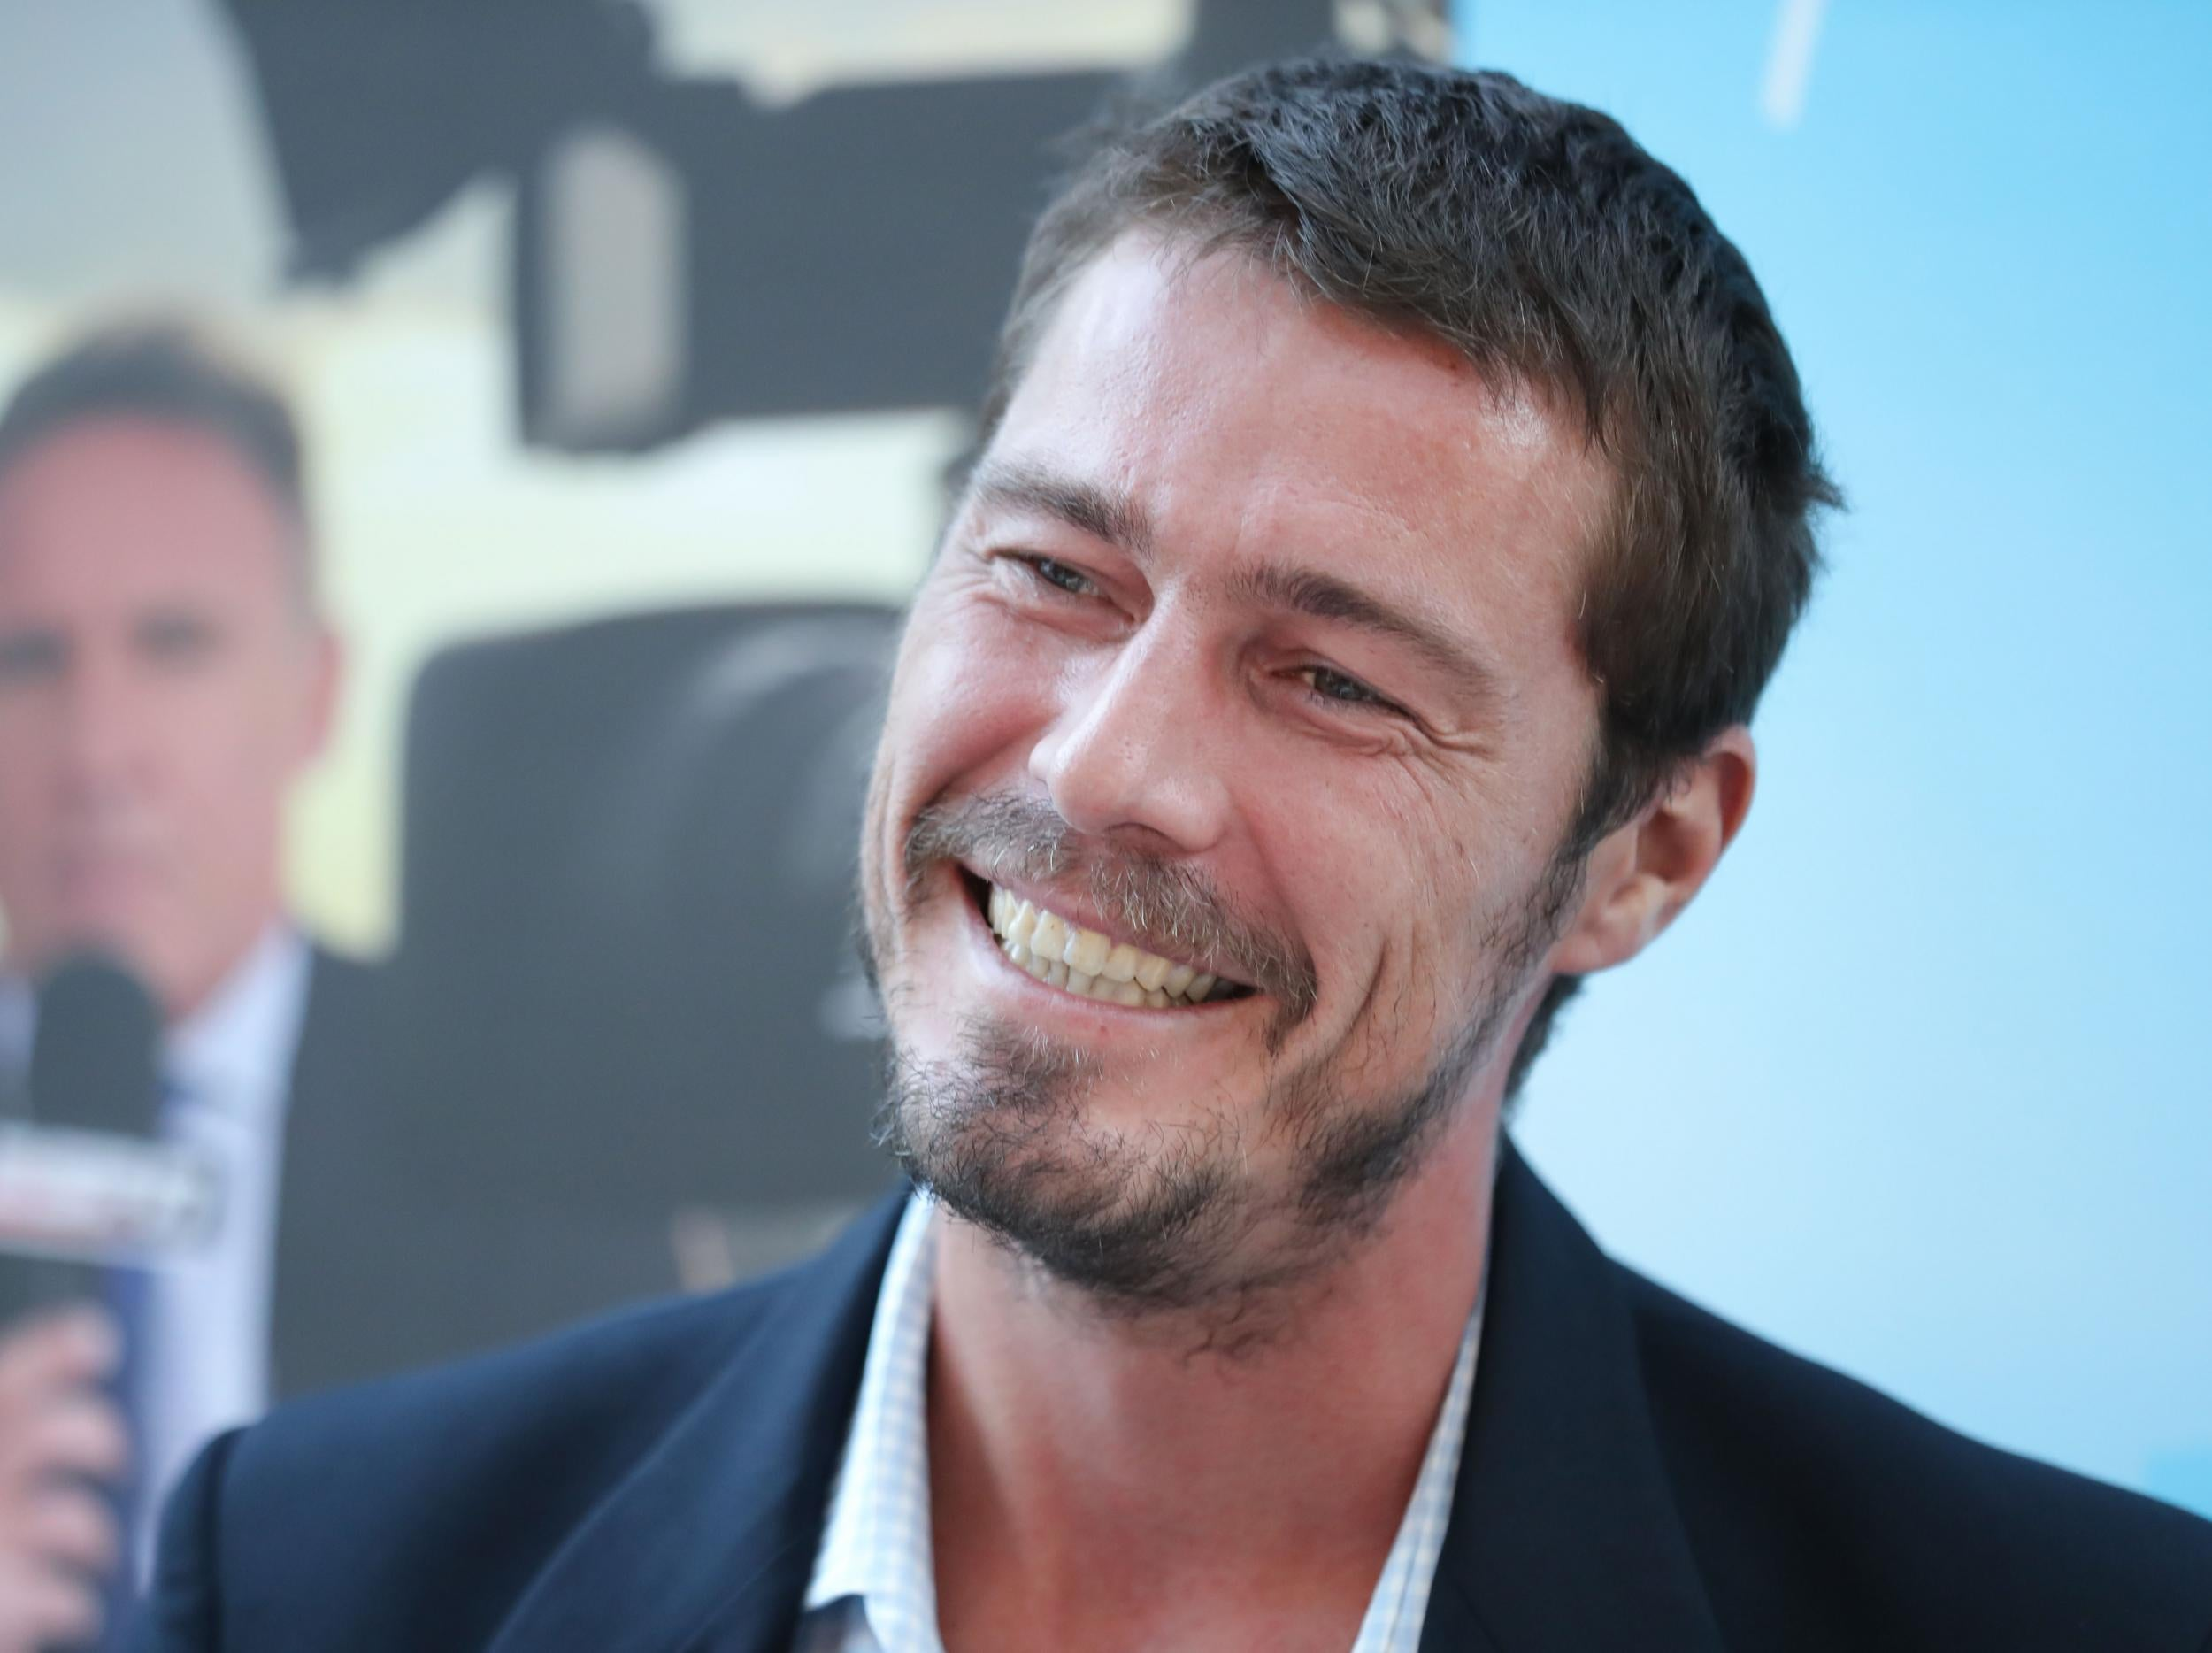 Marat Safin interview If Federer and Nadal are still winning